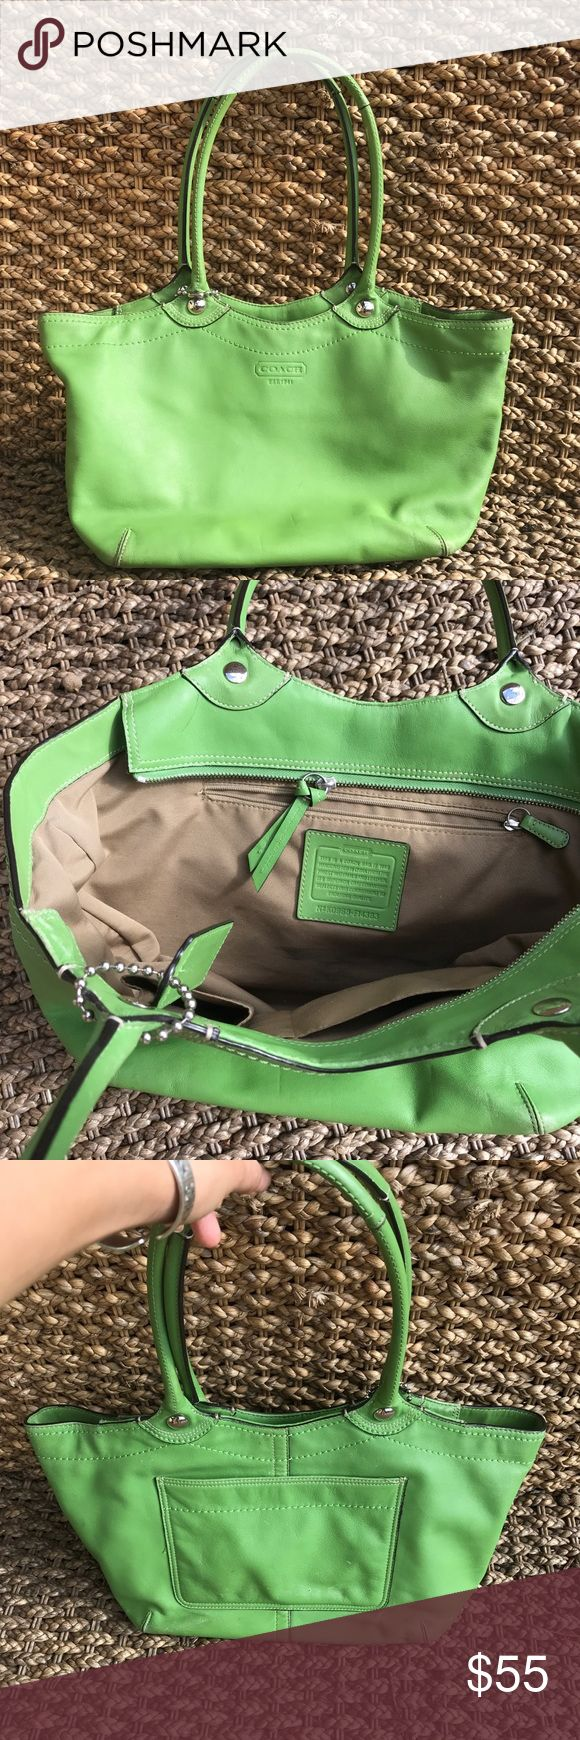 Coach Shoulder Bag Authentic apple green shoulder bag from coach, little wear on the back of the bag but not noticeable. Other than that all is perfect. Price is firm Coach Bags Shoulder Bags